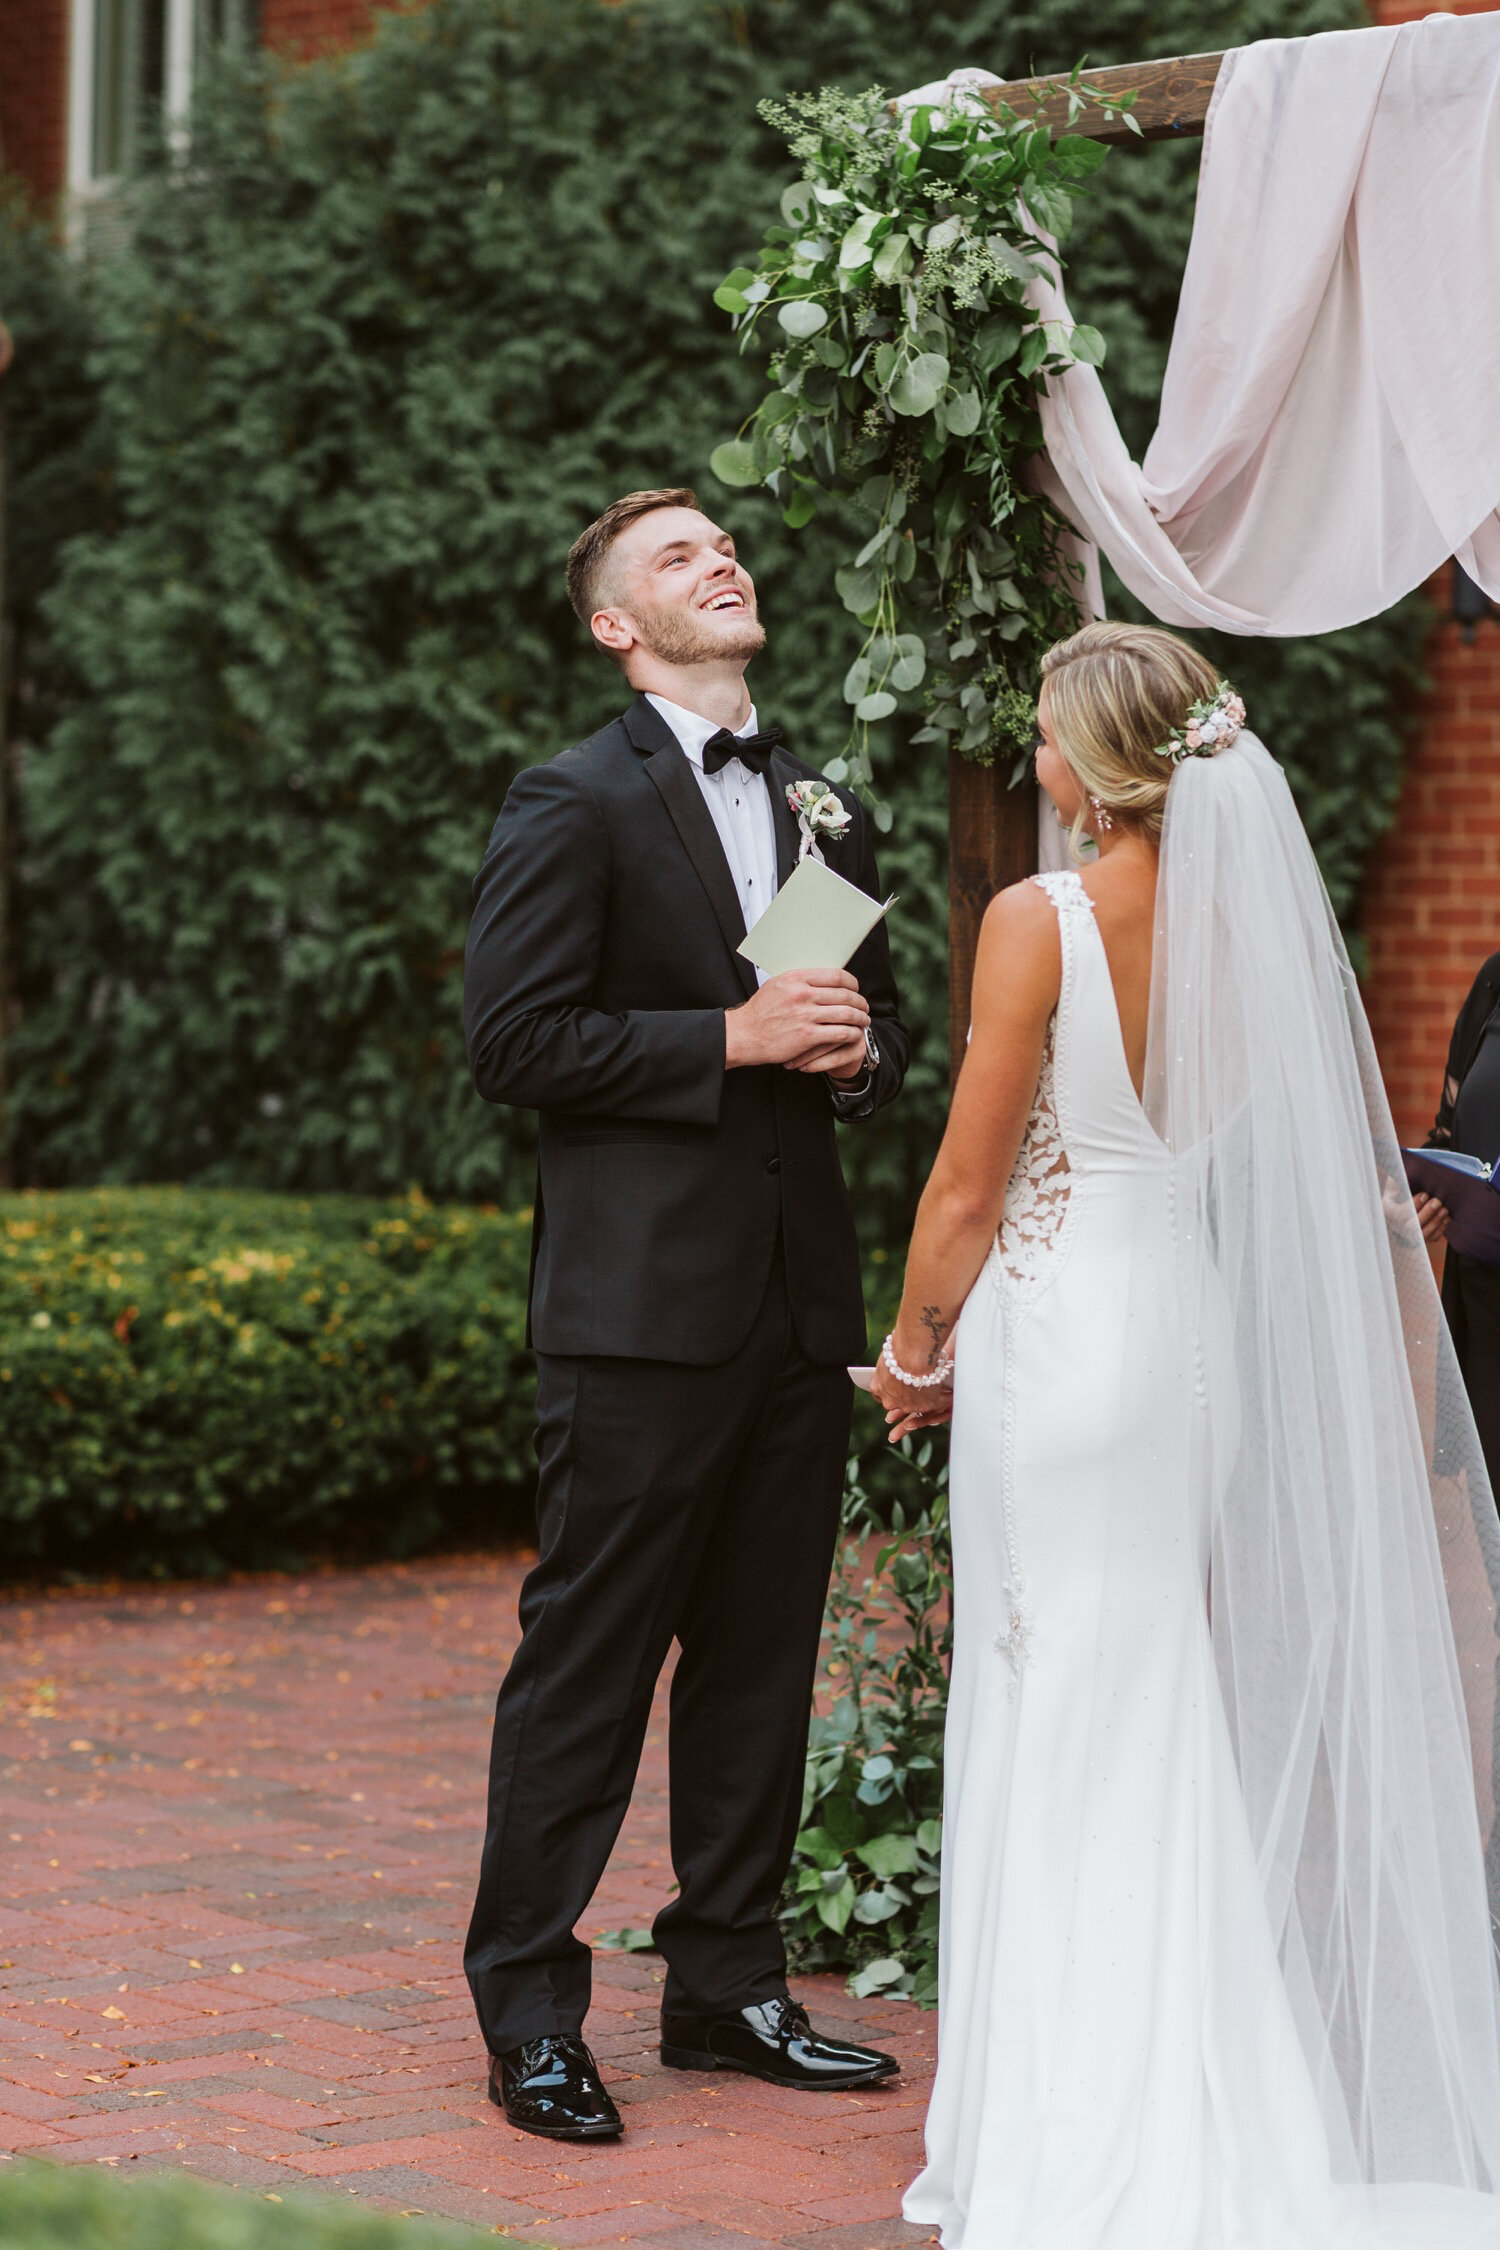 Bride and groom share vows